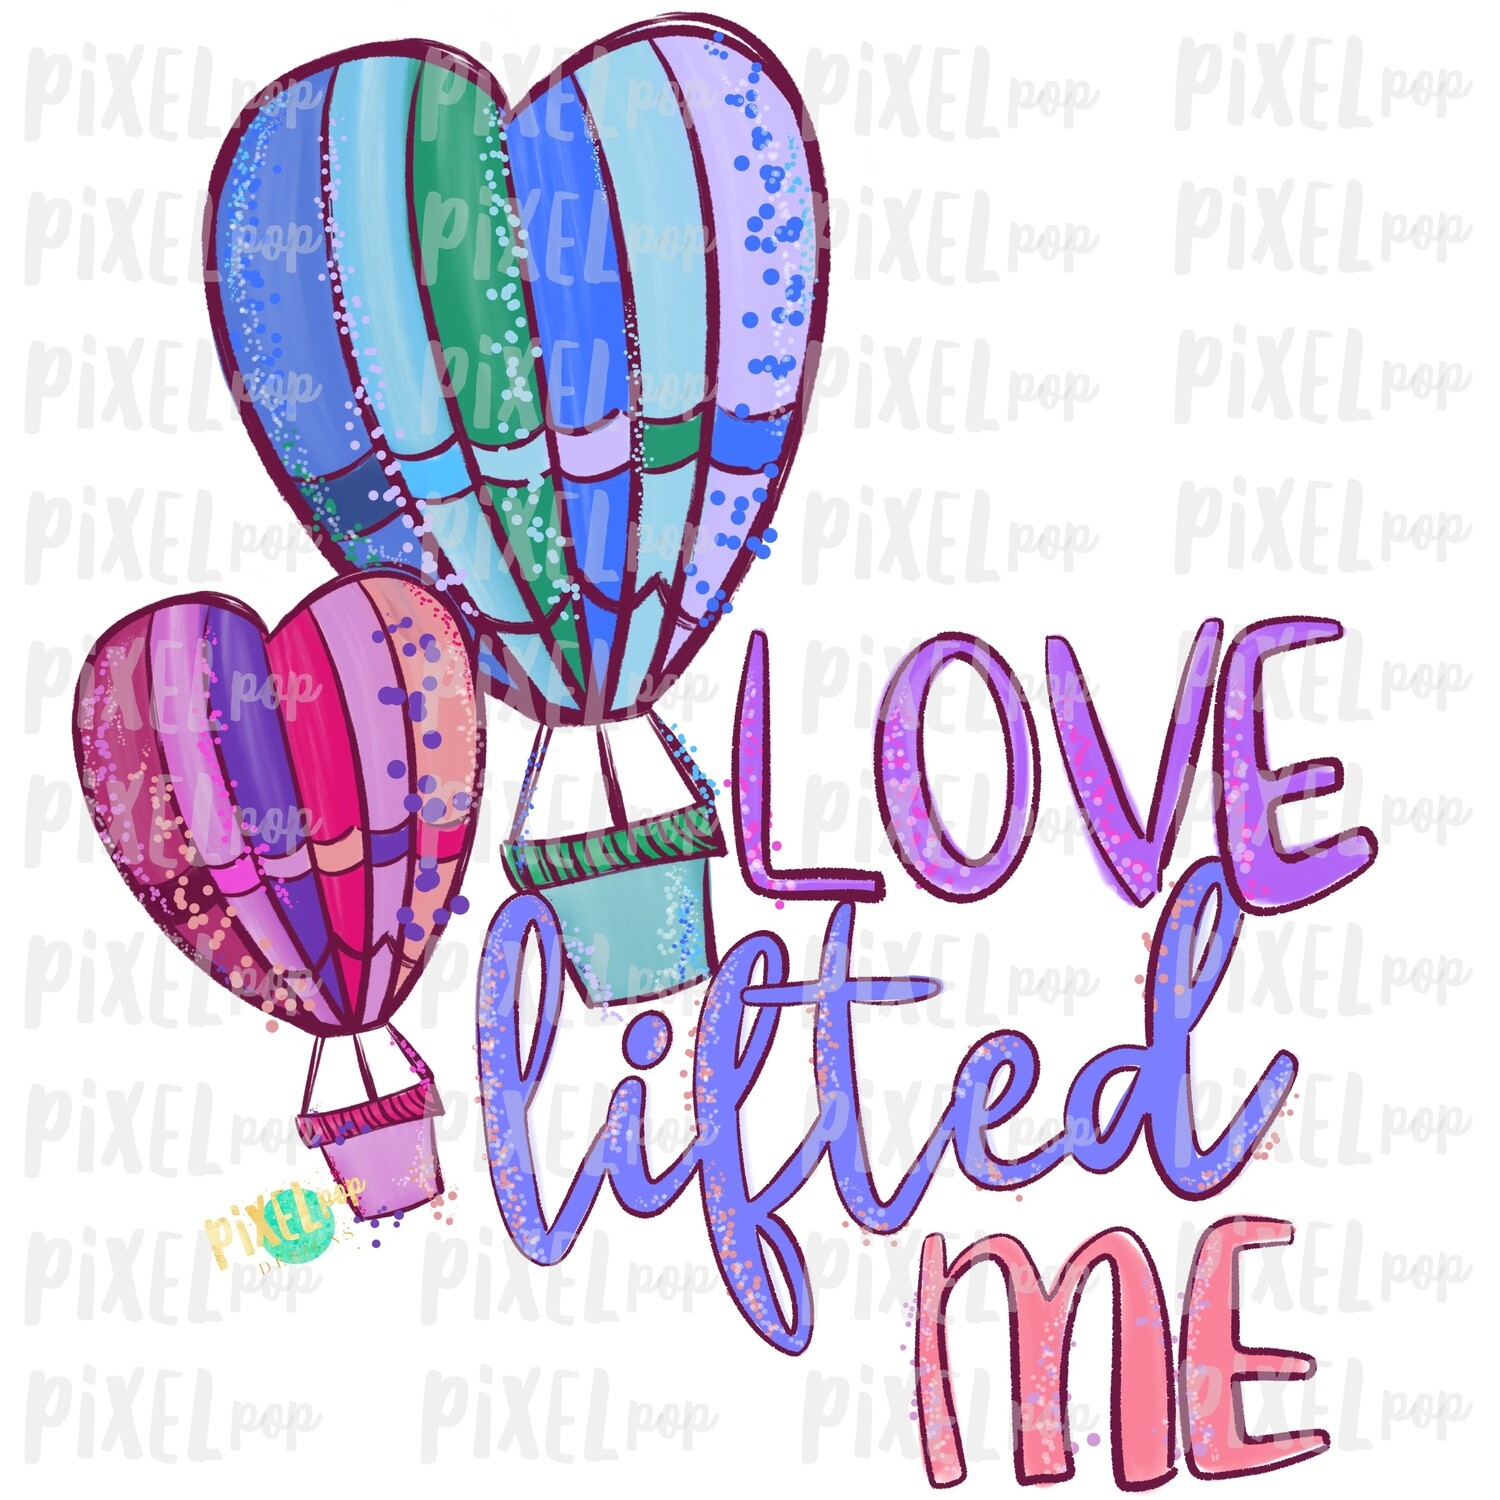 Love Lifted Me Heart Hot Air Balloons Valentine Sublimation PNG | Love is Kind | Valentine Day Art | Hymn PNG | Digital Download | Printable Art | Clip Art